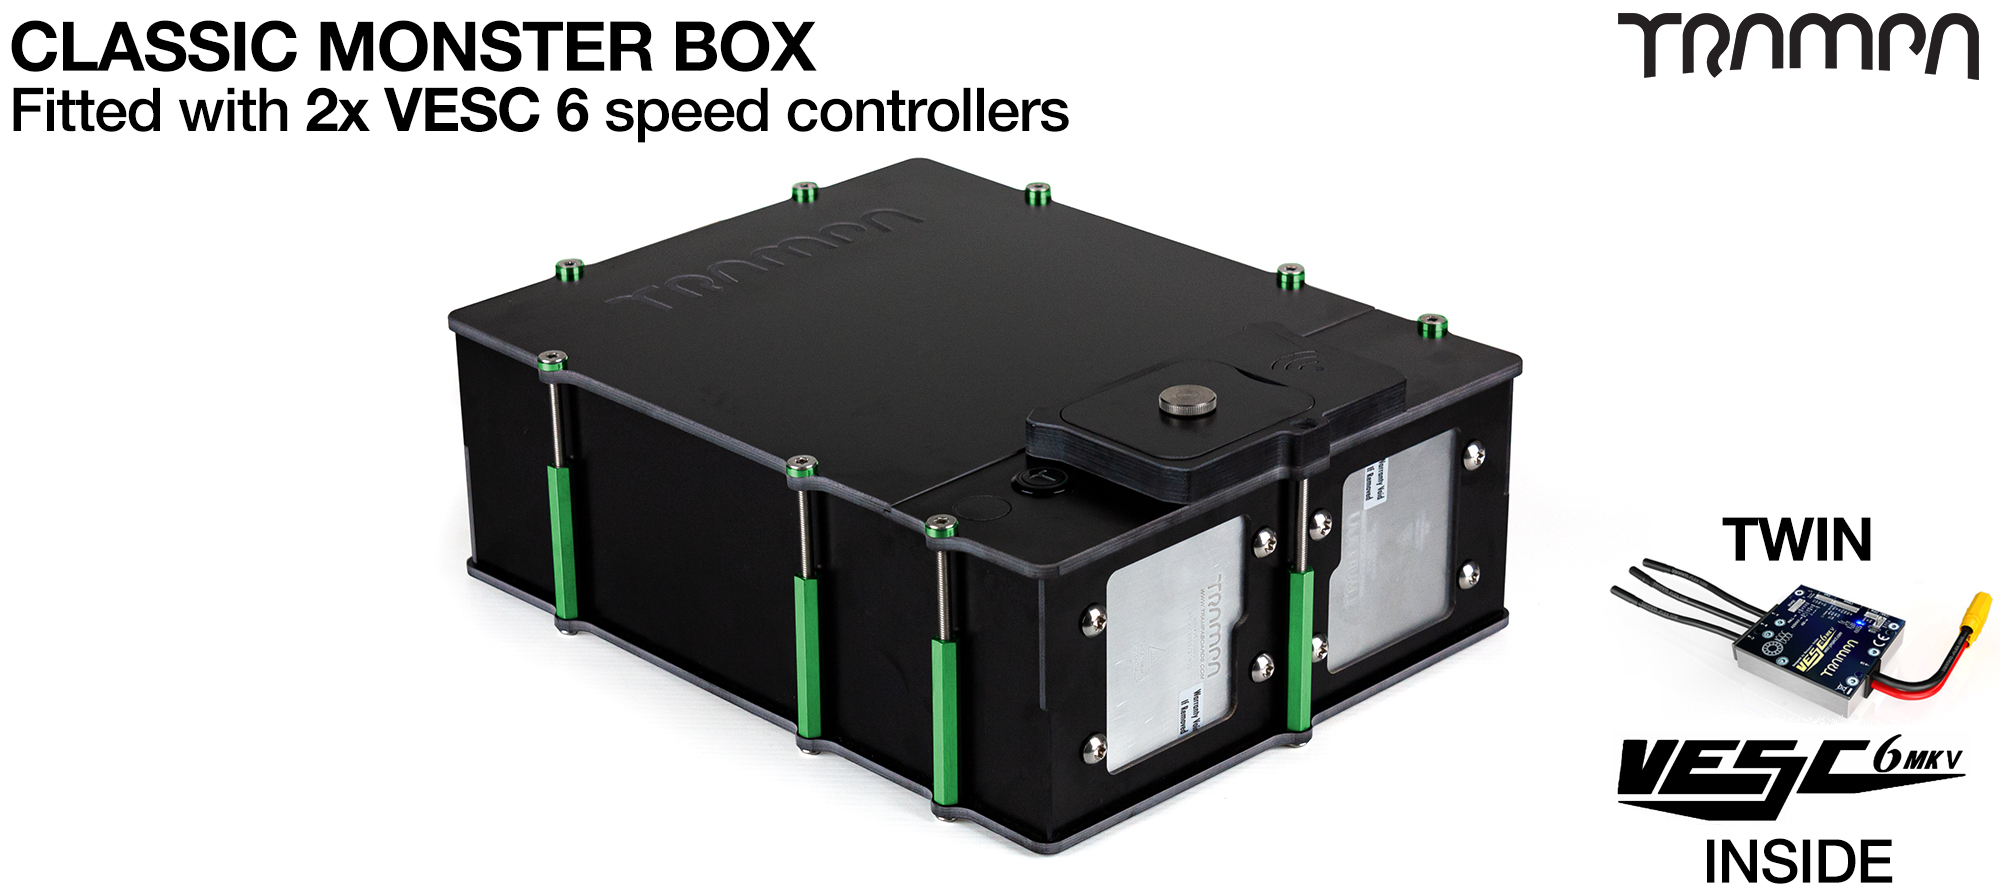 The MONSTER BOX MkIV fitted with TWIN VESC 6 - fits 84 18650 cells is Made specifically to work in conjunction with TRAMPA's Electric Decks but can be modified to power many things!